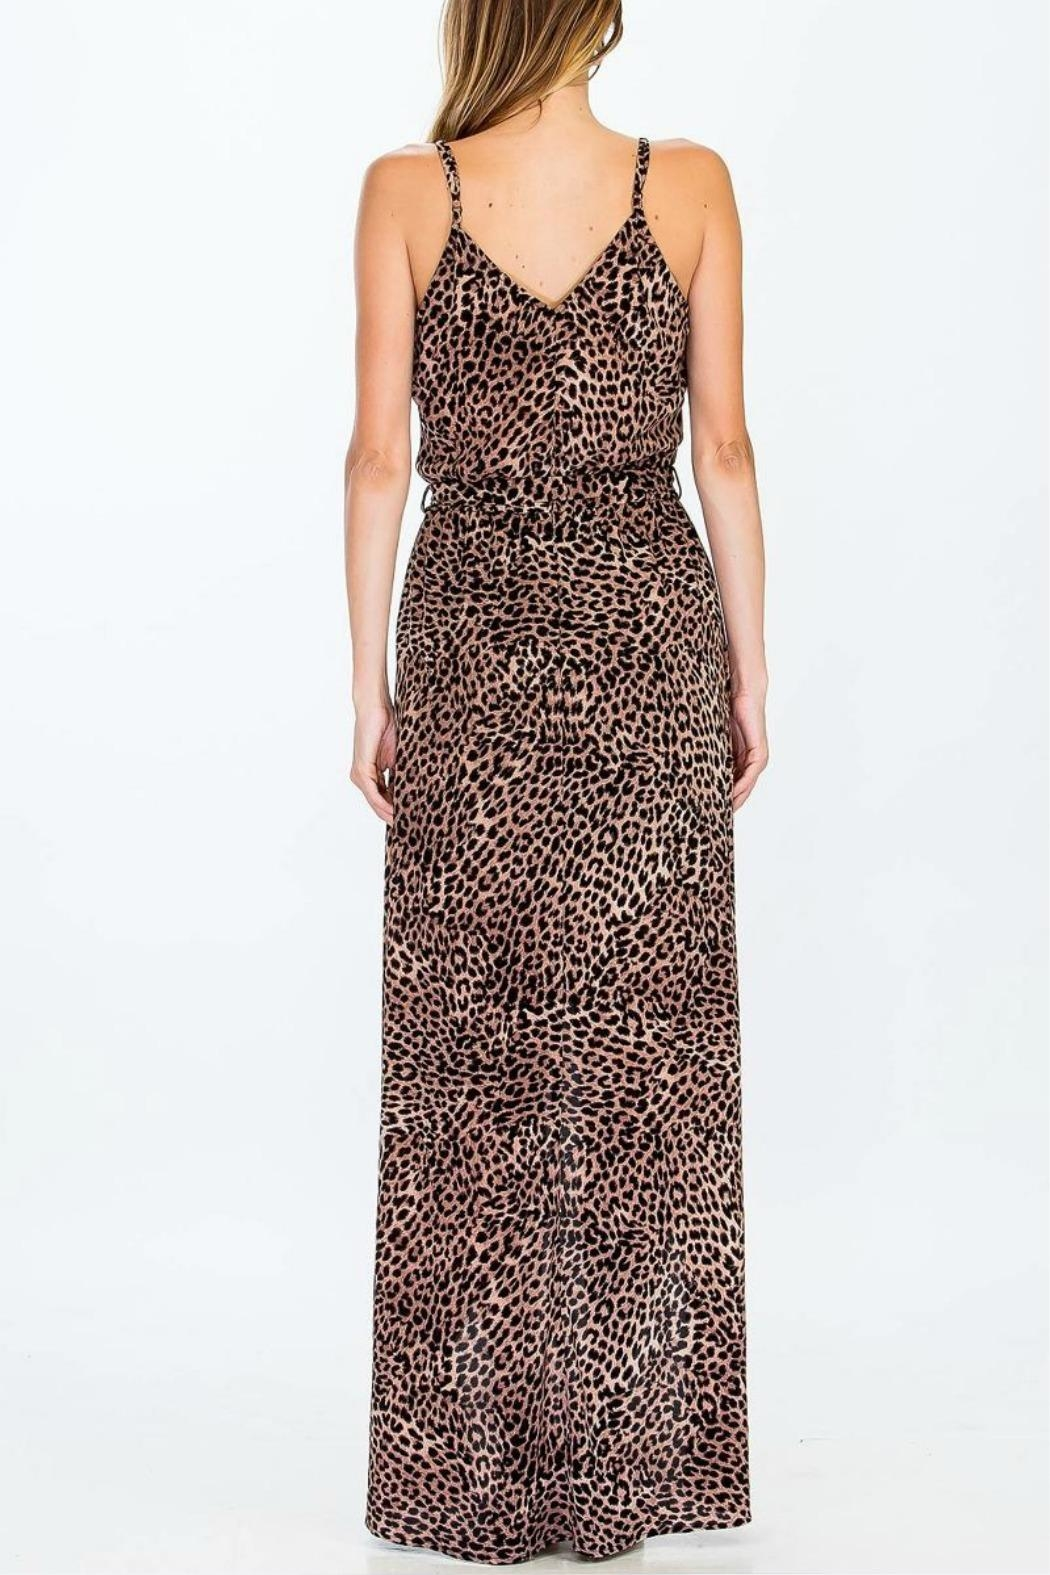 Olivaceous Cheetah Maxi Dress - Front Full Image